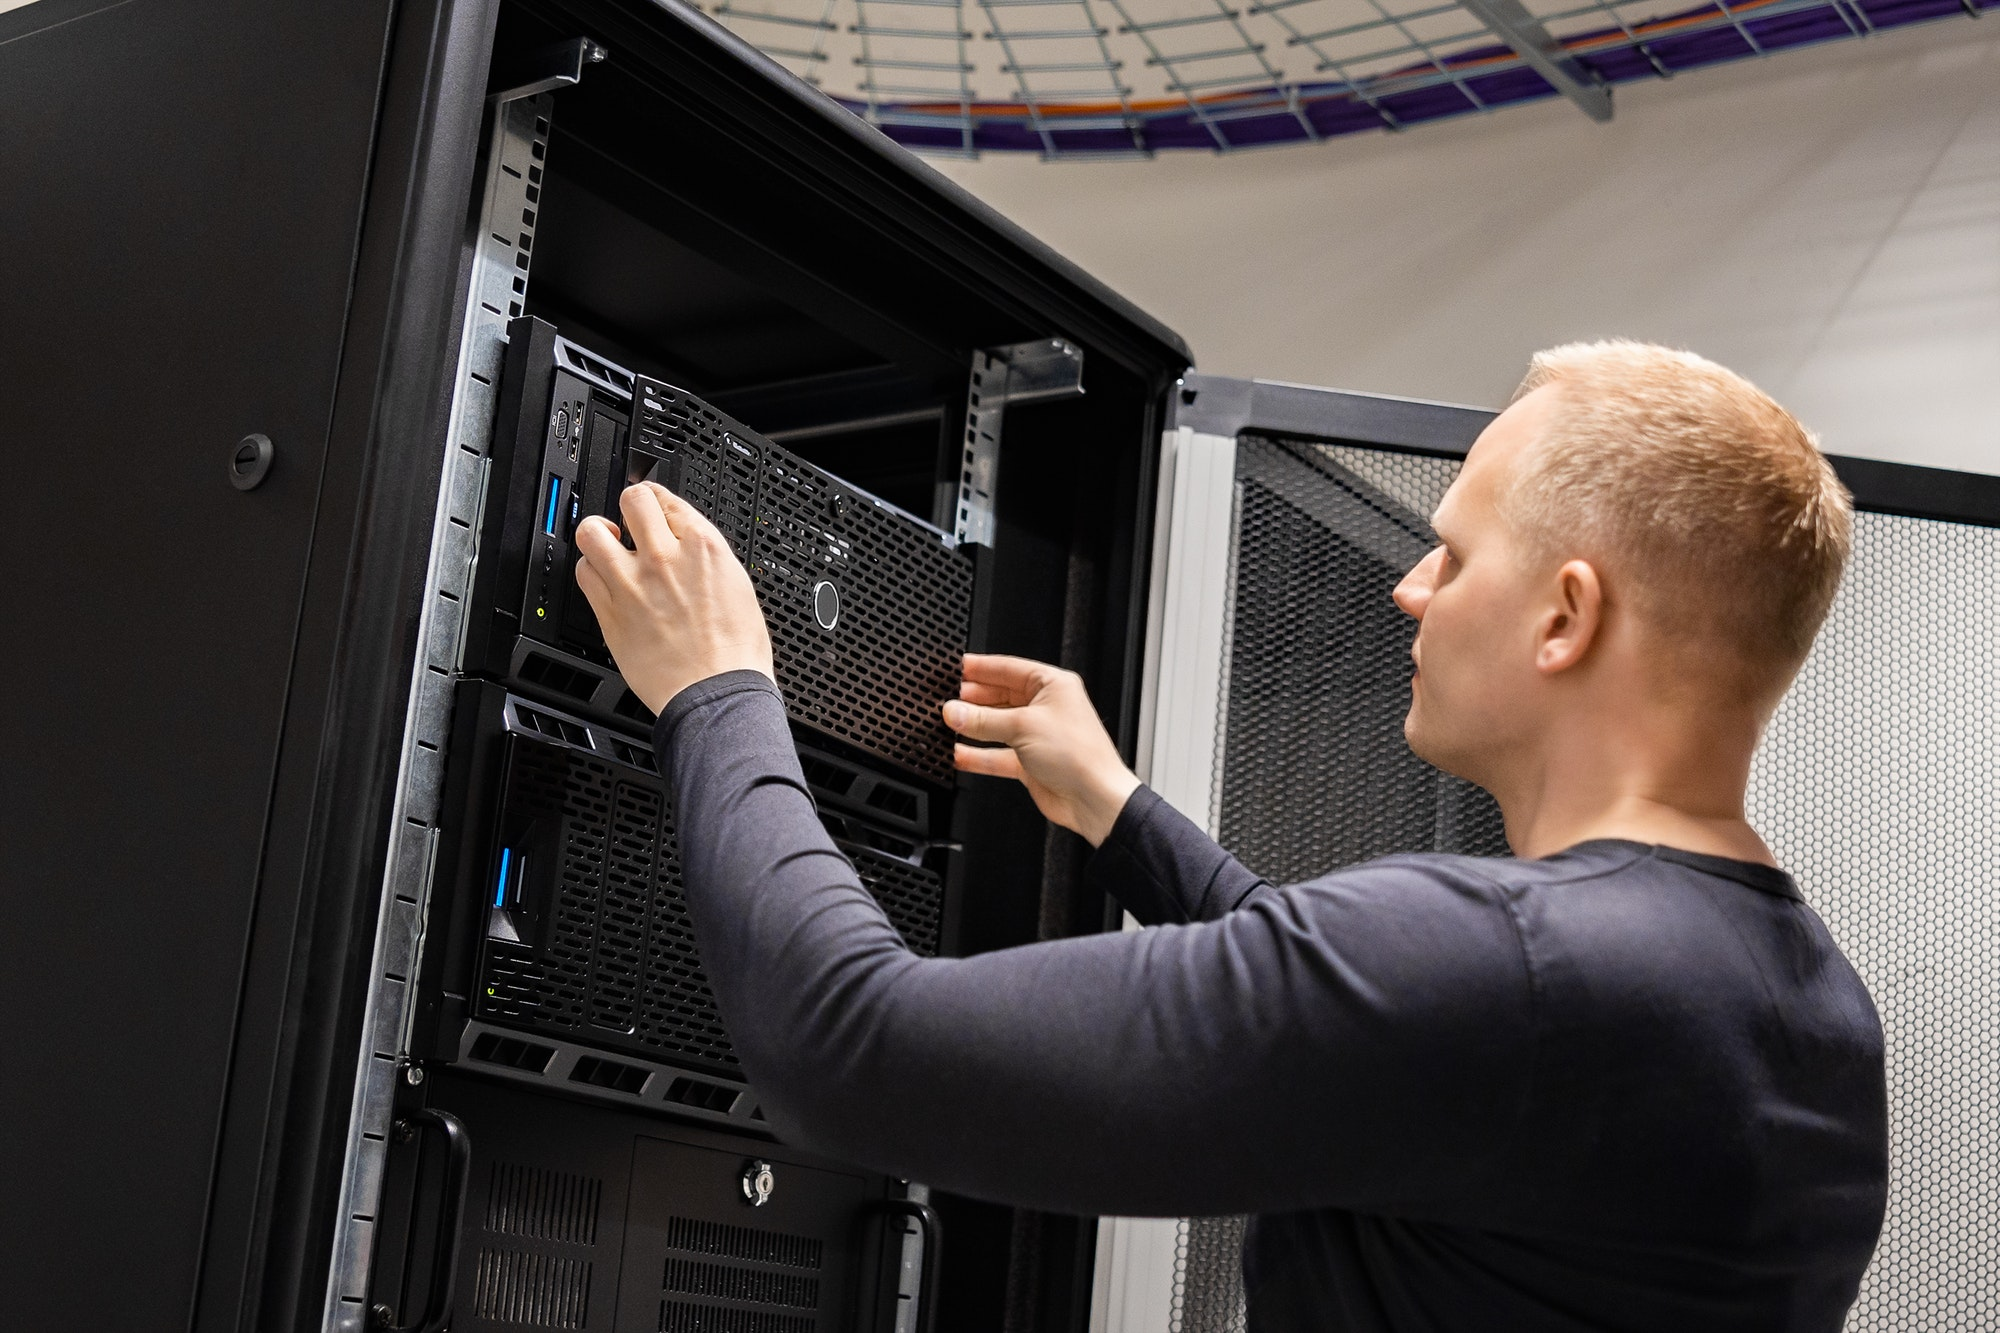 IT Engineer Working With Servers In Datacenter